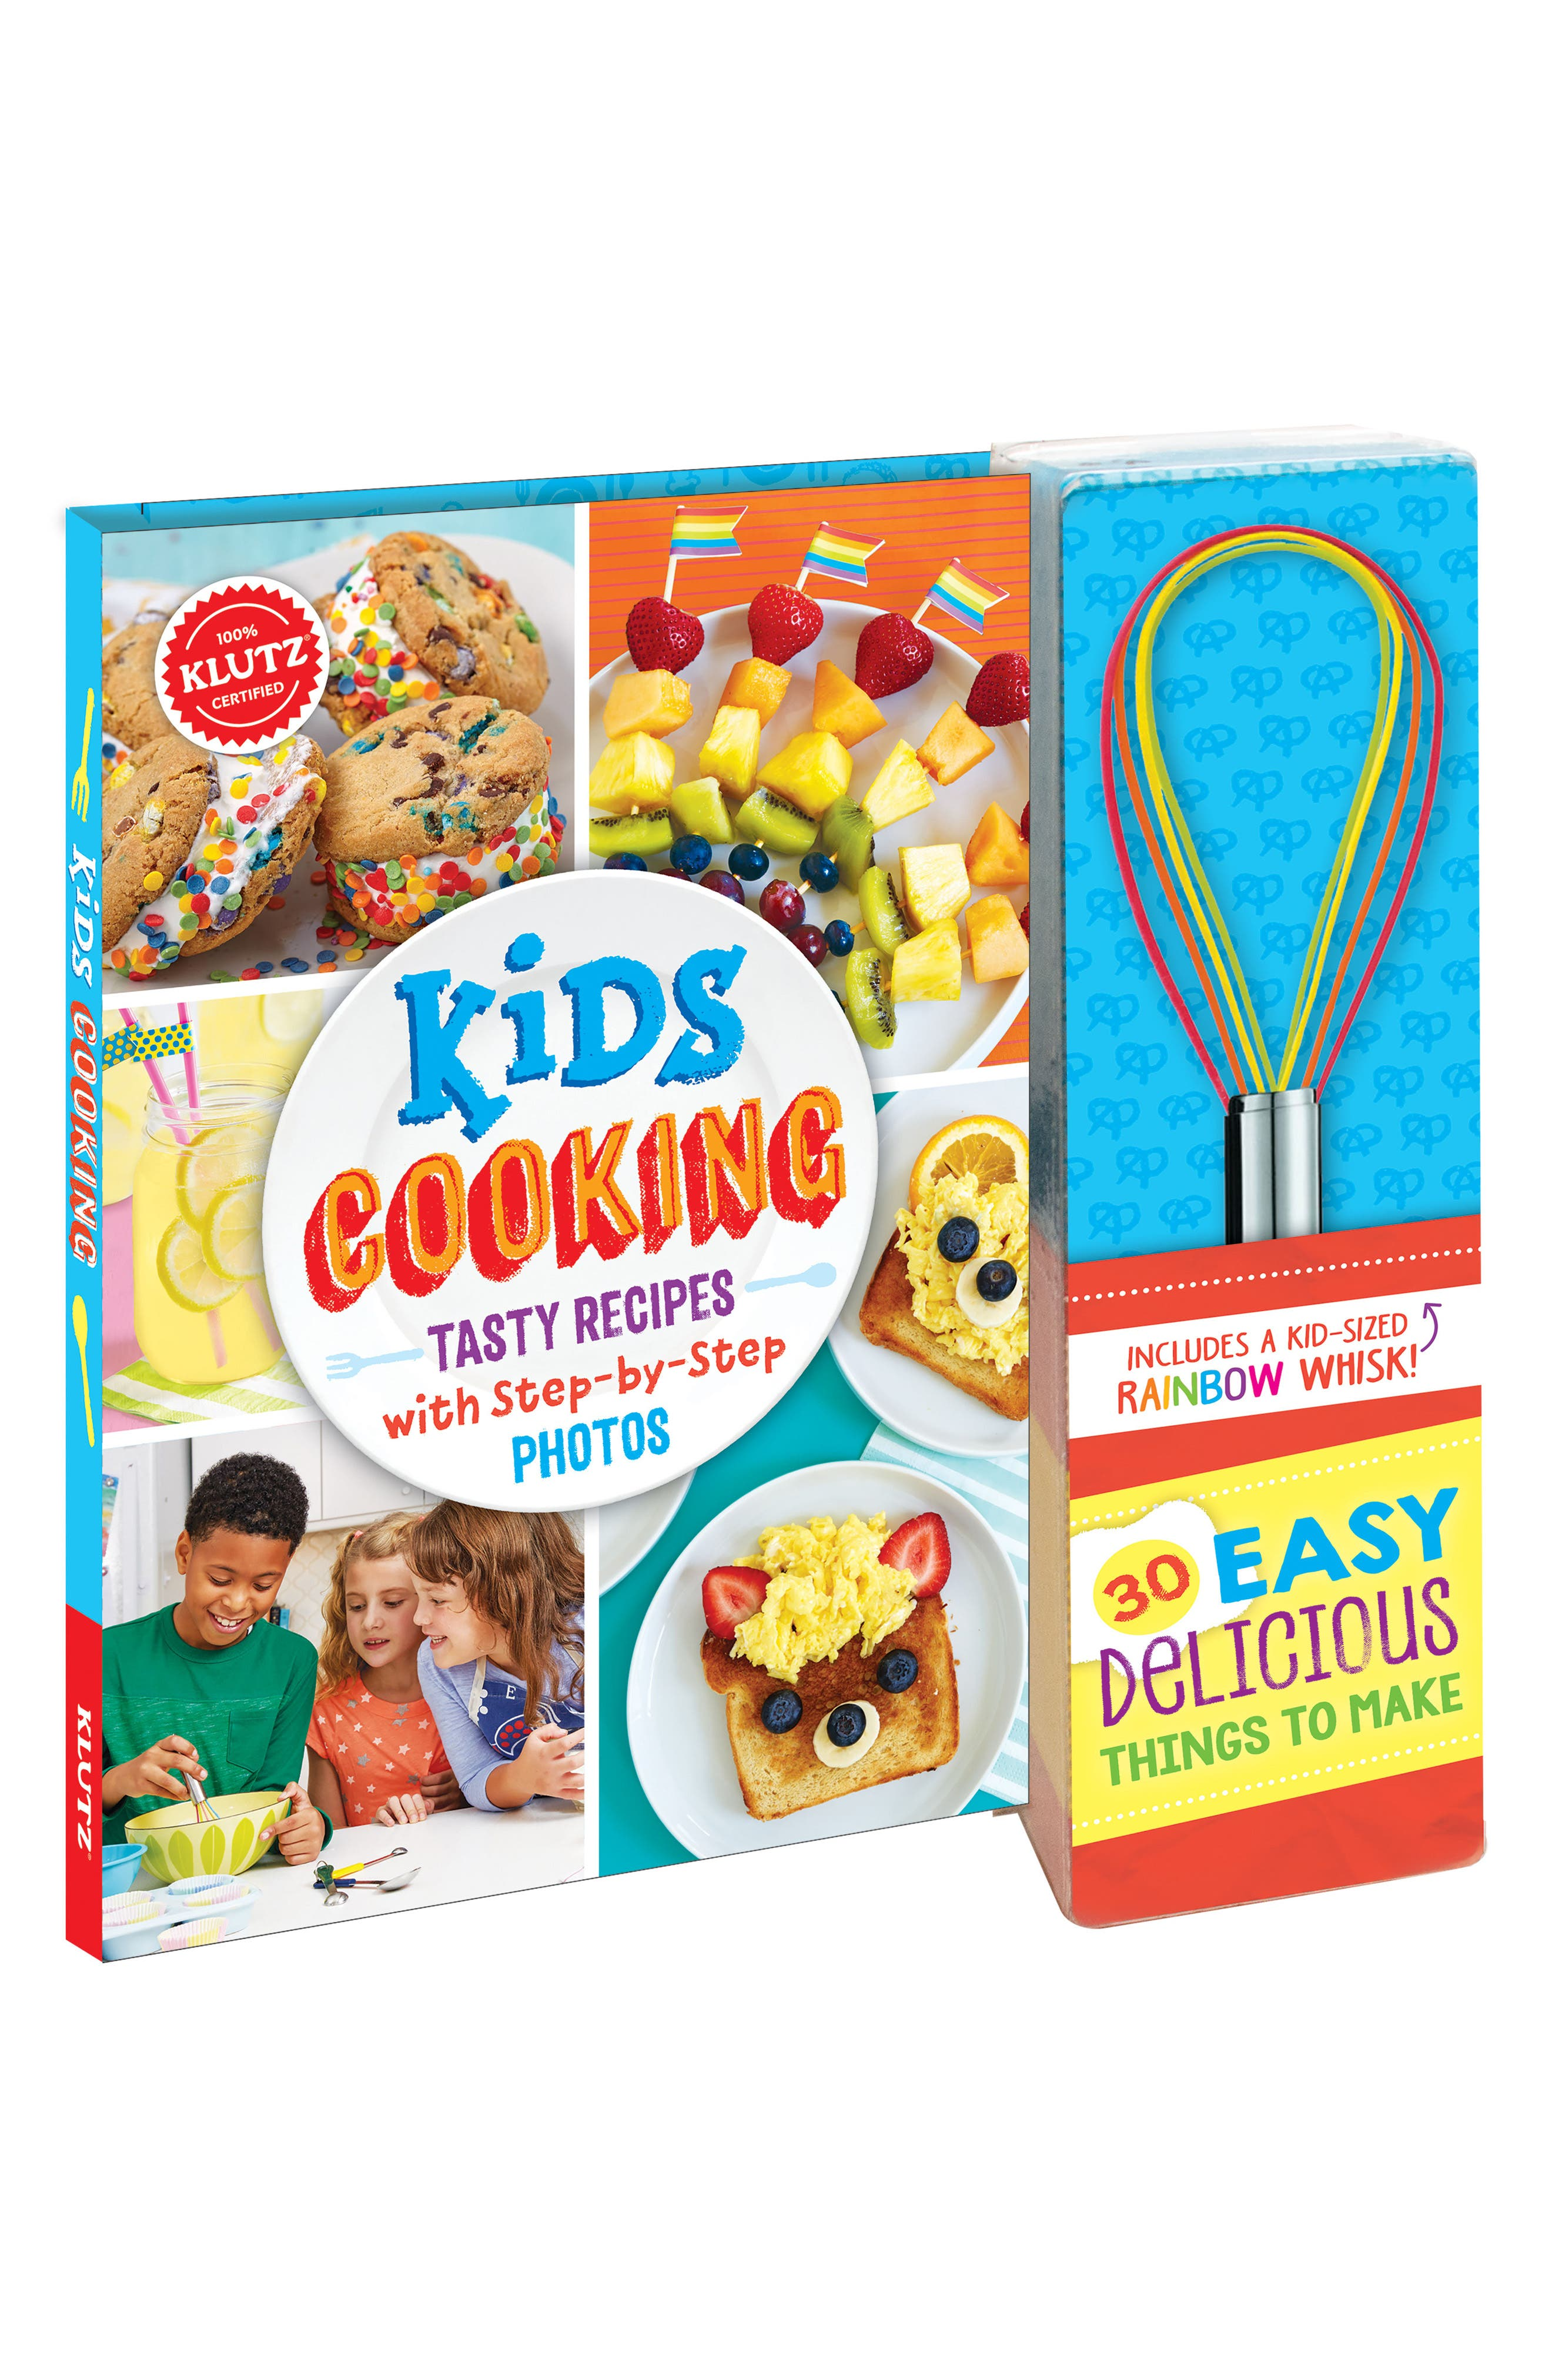 Klutz Kids Cooking Cookbook with Rainbow Whisk